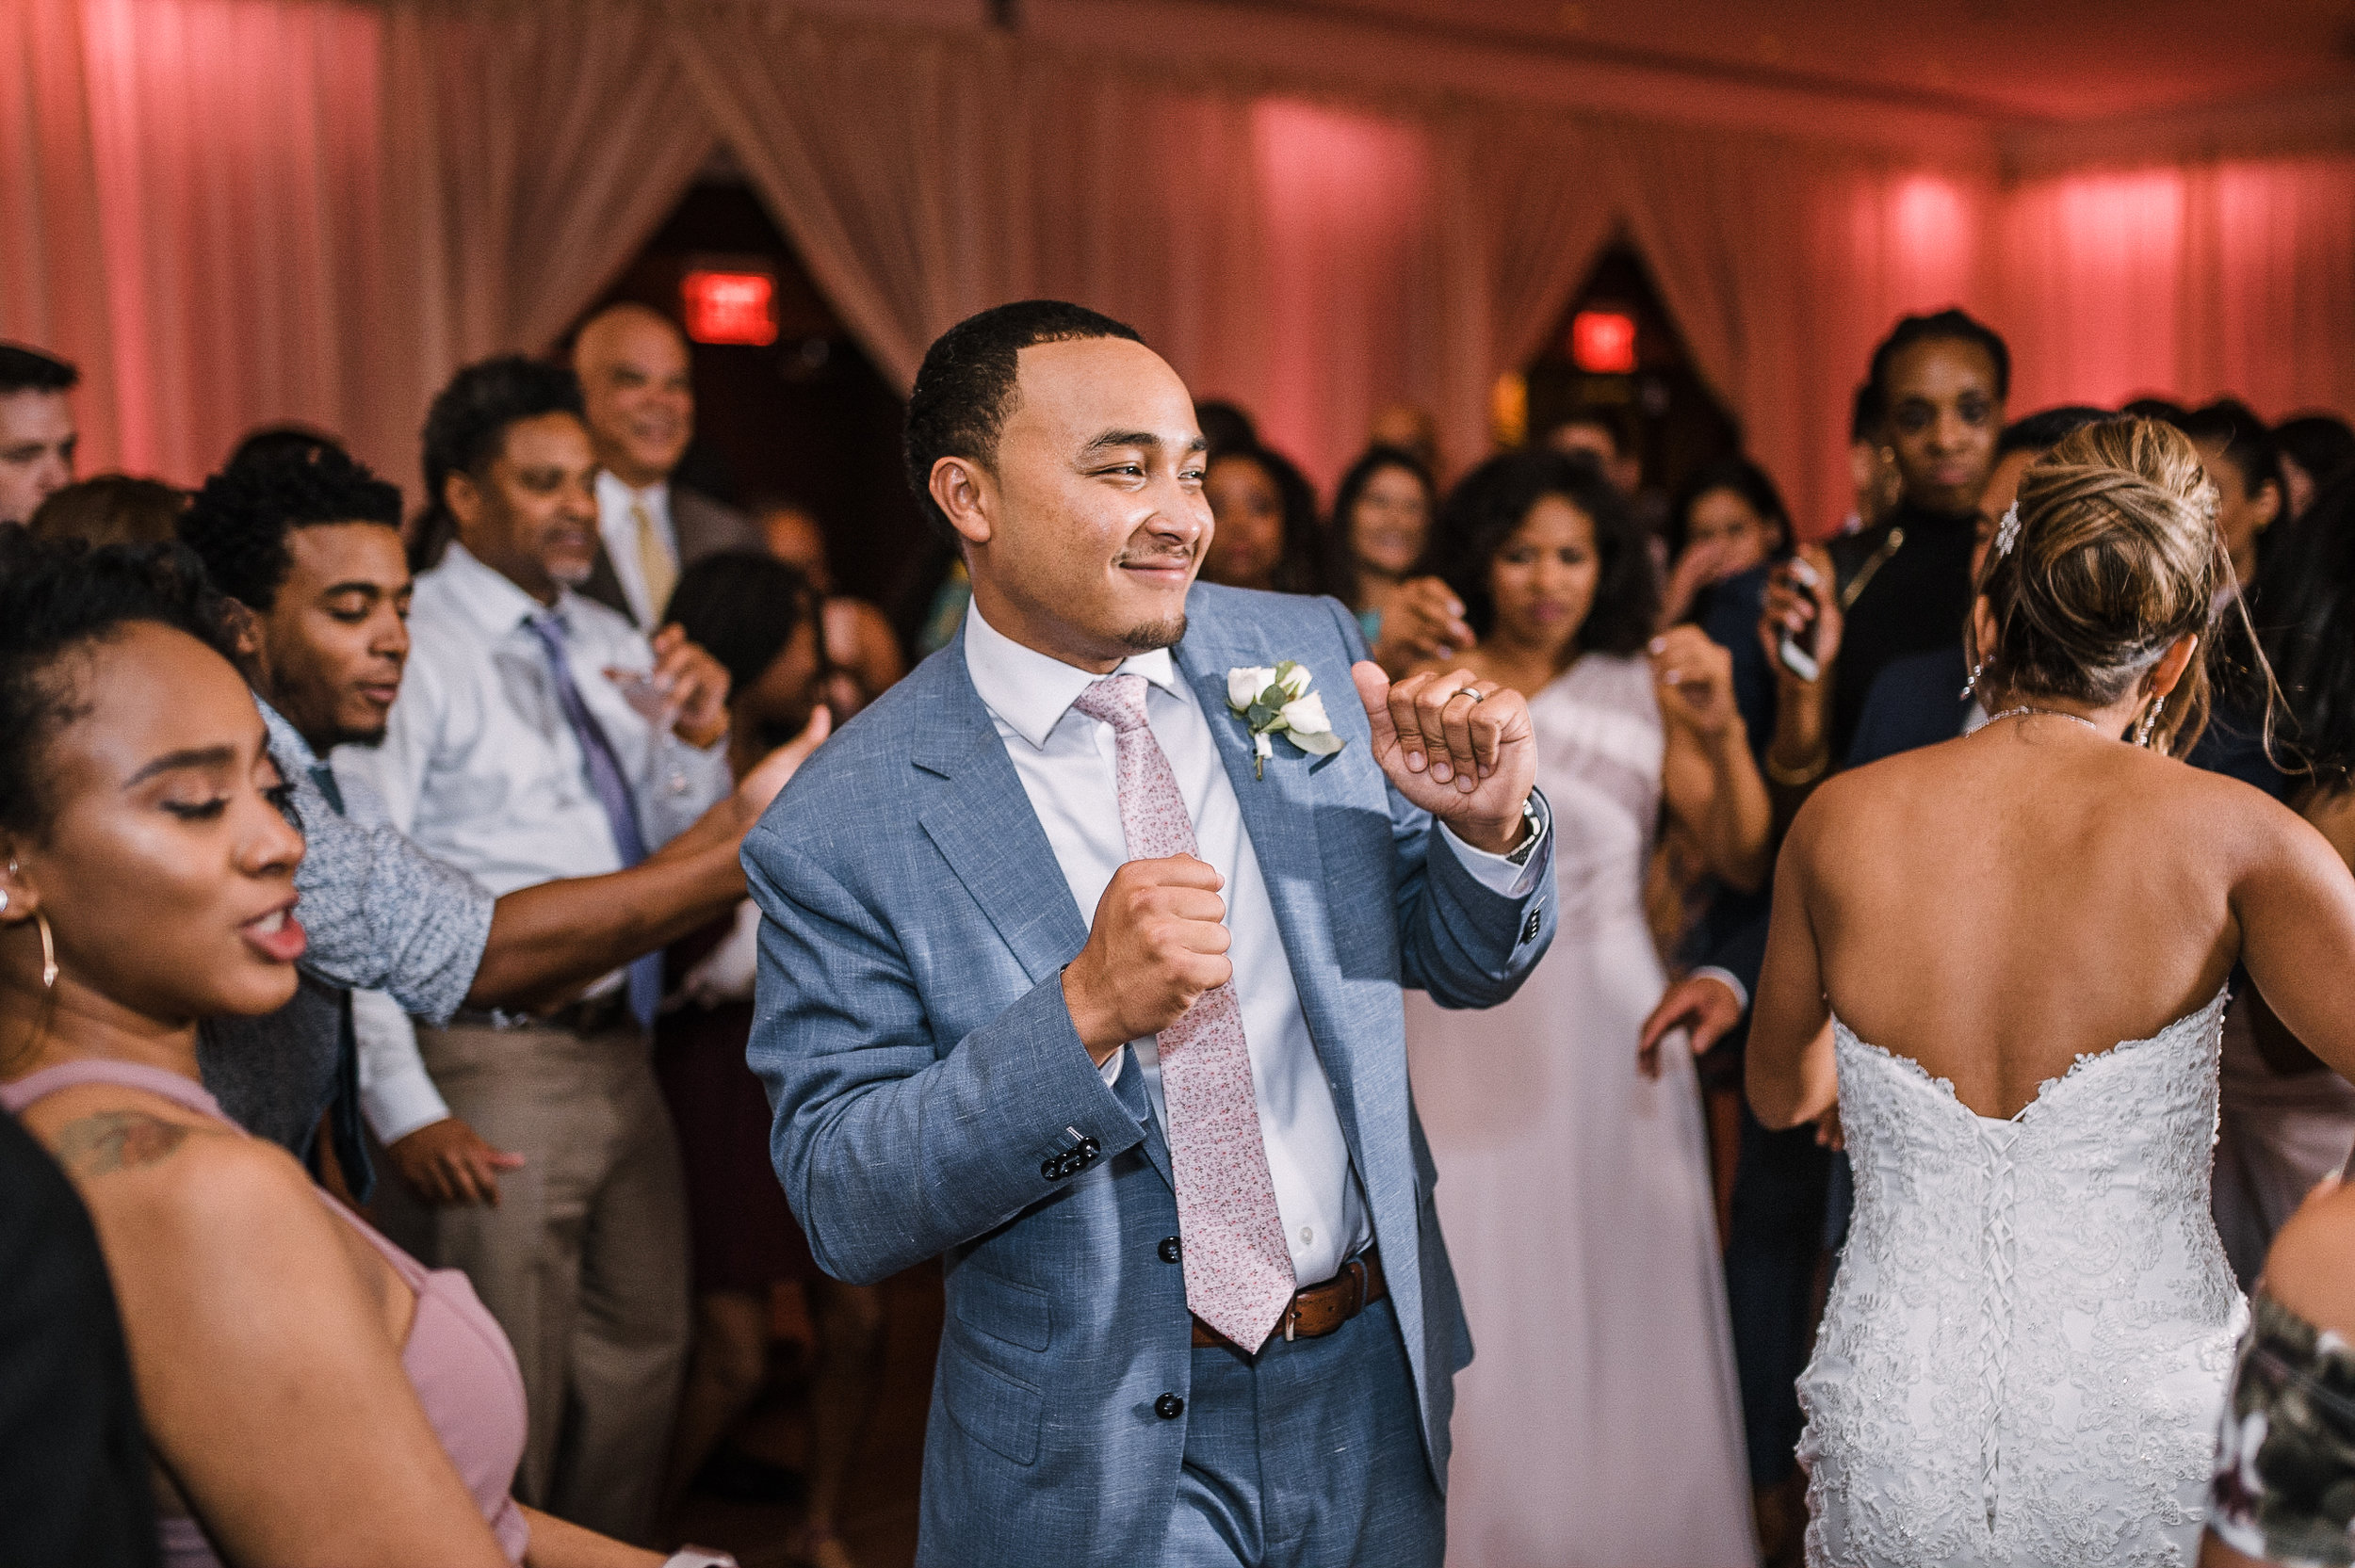 groom and guests dancing at The Park Hyatt Hotel in Washington DC